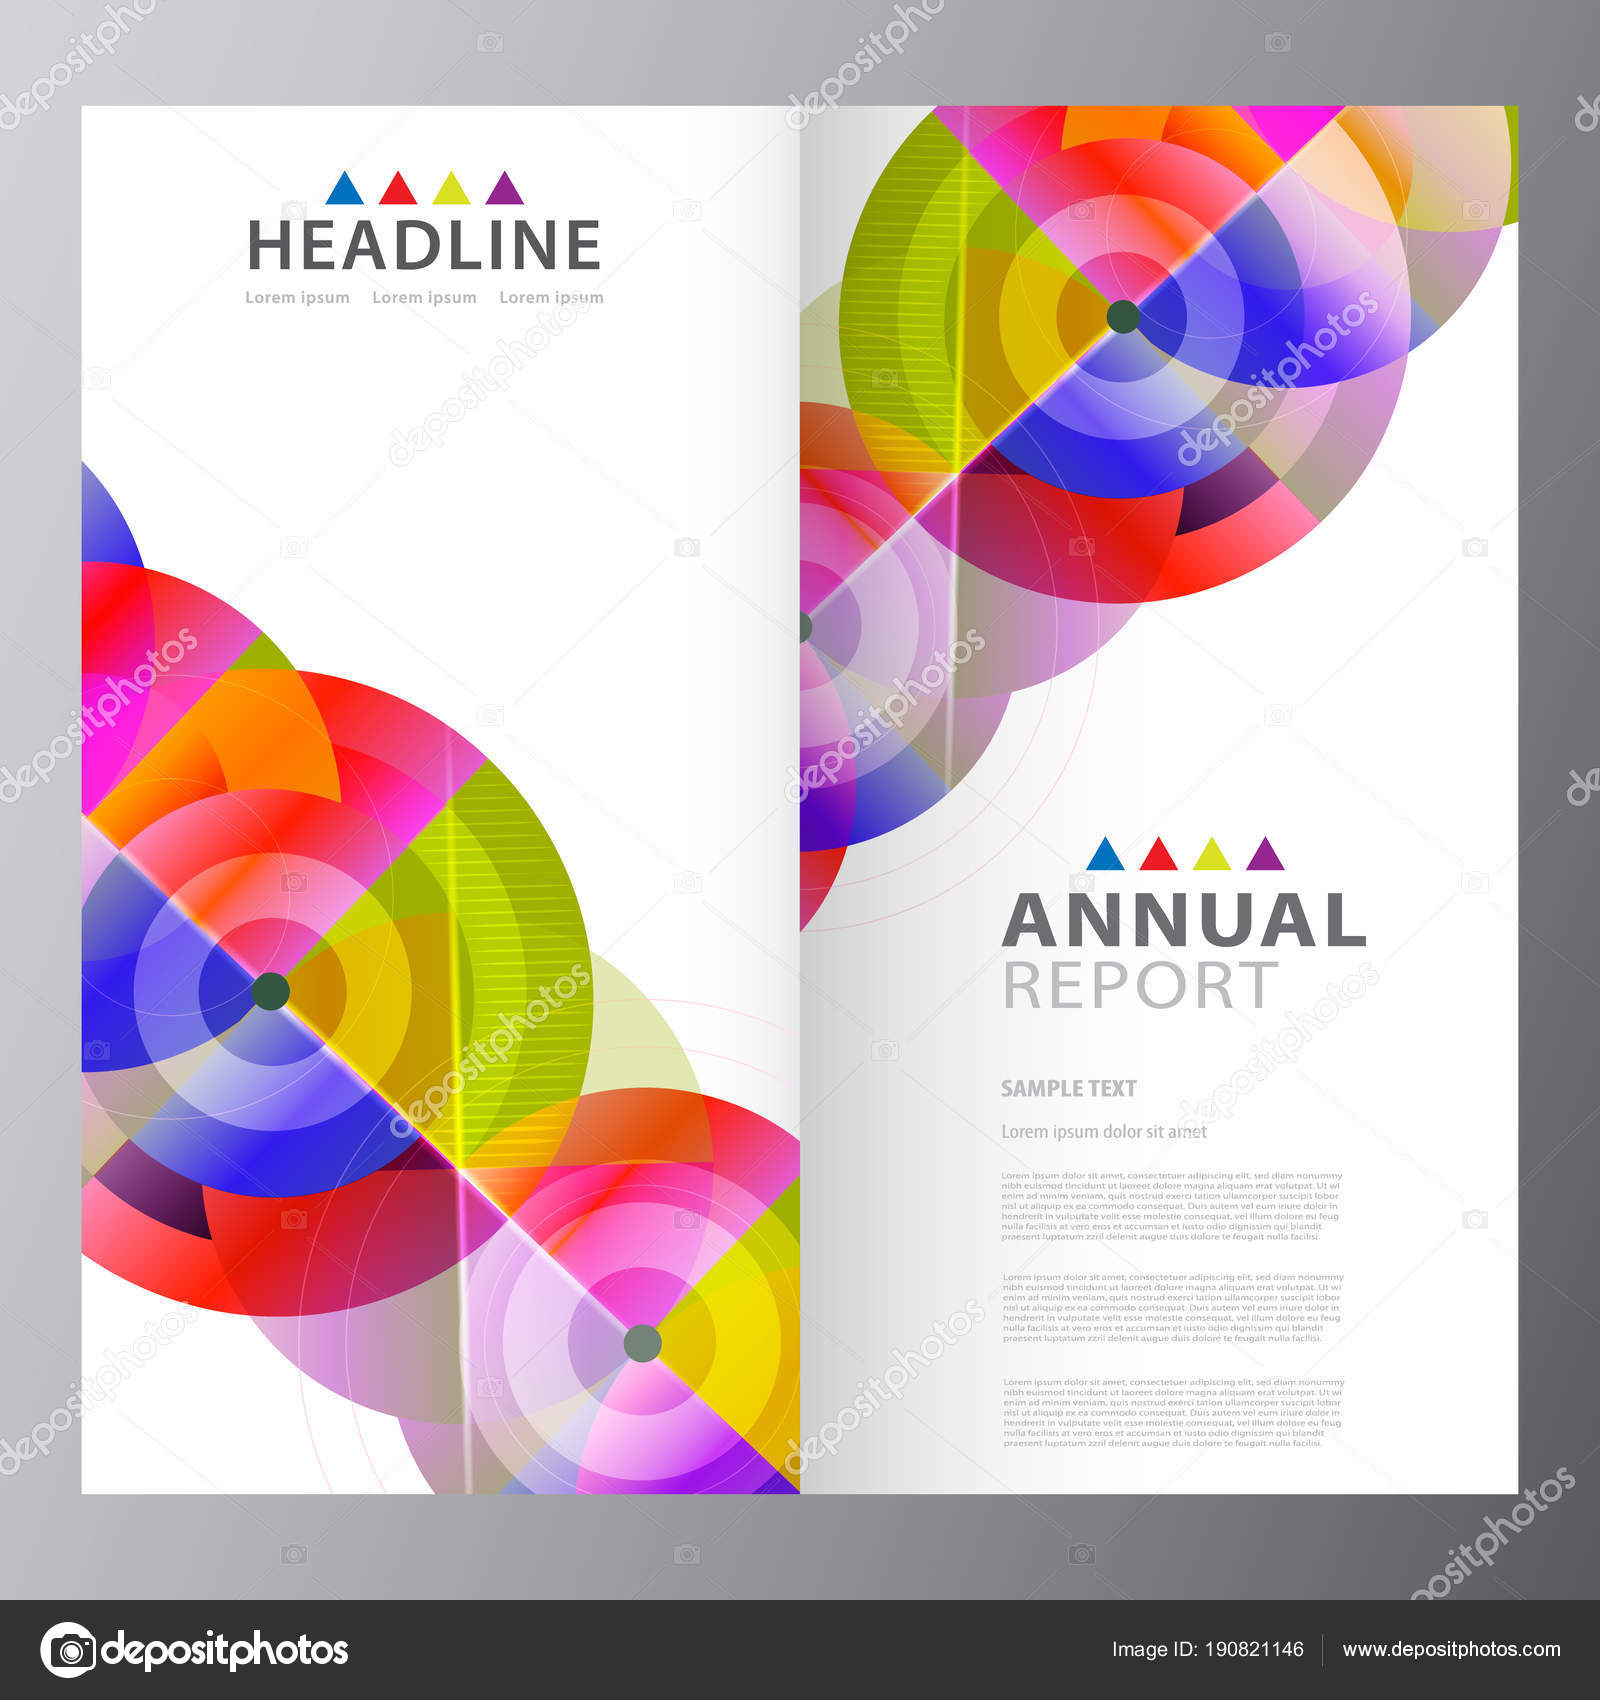 Annual Business Report Template Stock Vector Stocklady36 190821146